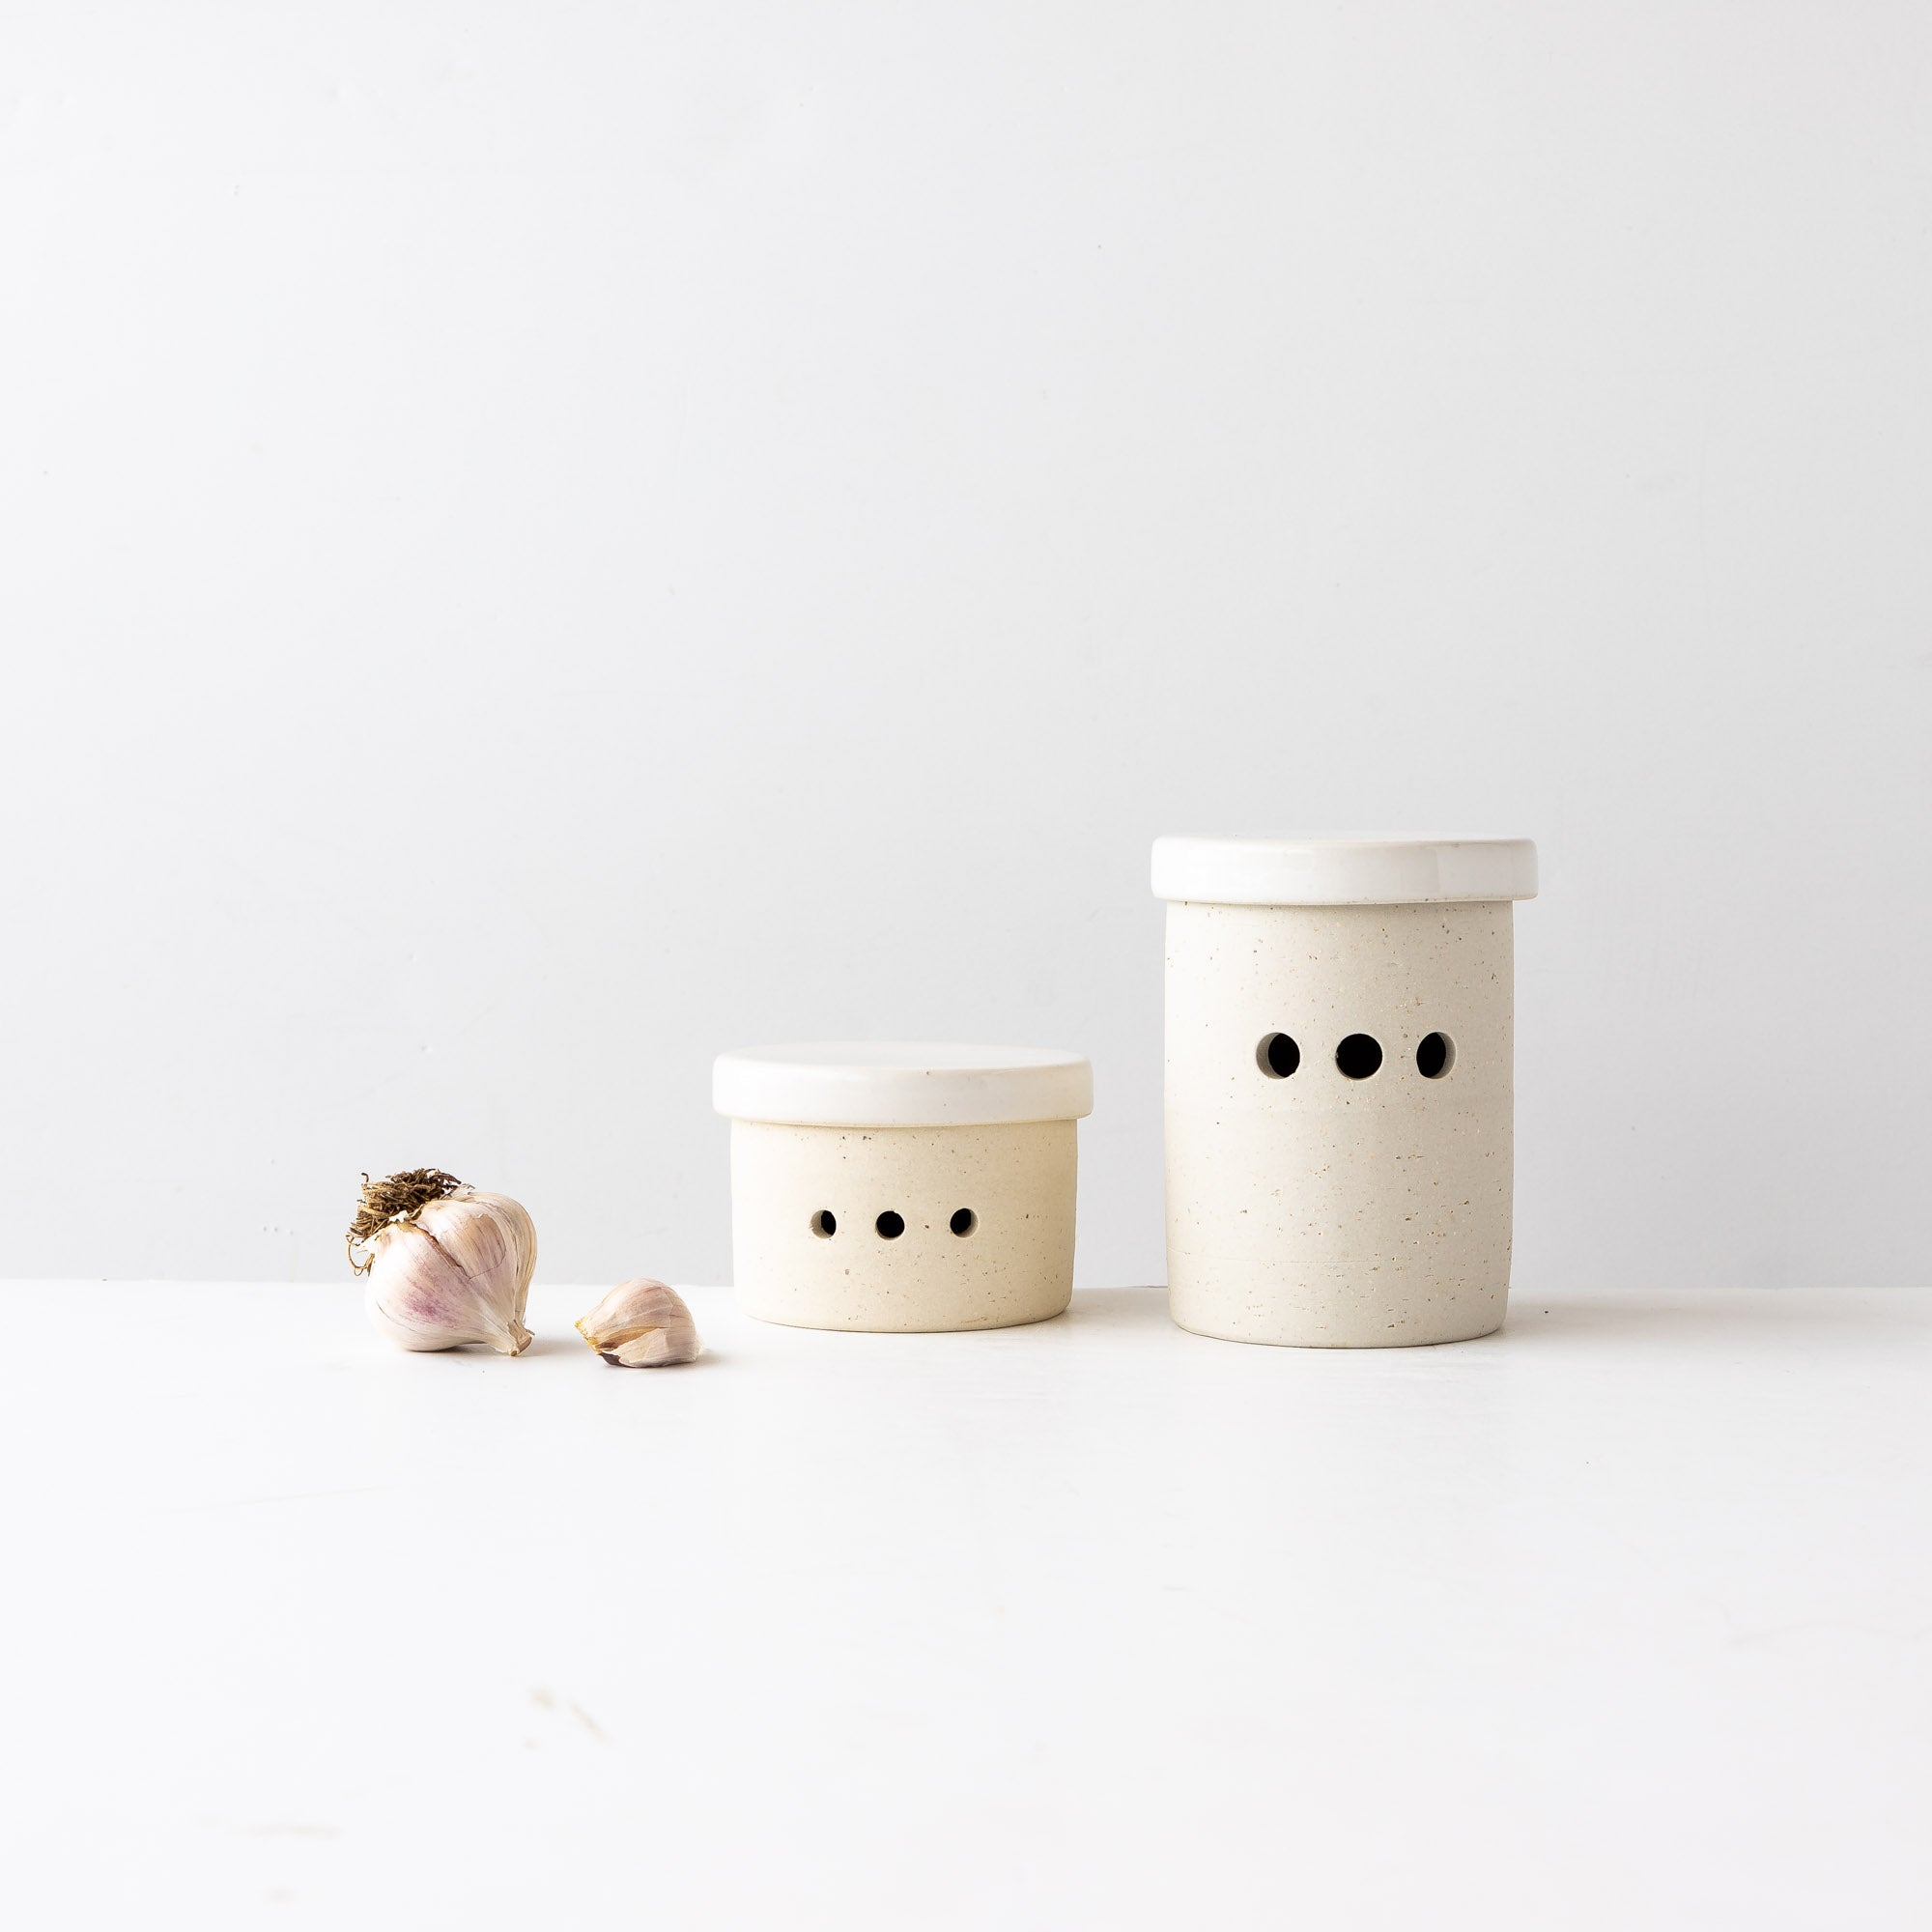 Small & Large Handmade Ceramic Garlic Keepers / Pots - Sold by Chic & Basta